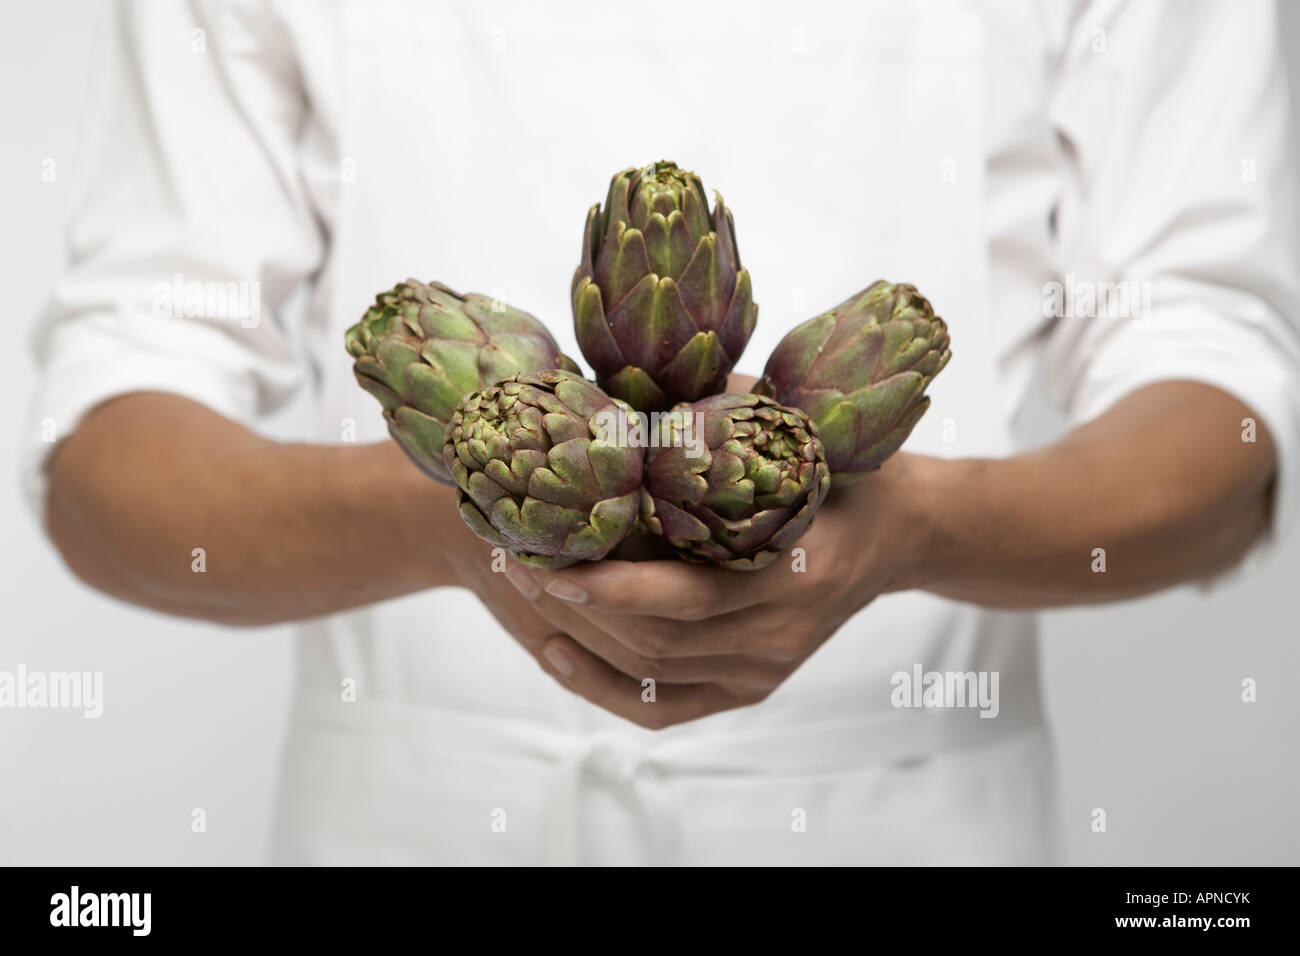 Chef holding artichokes (mid section) Stock Photo